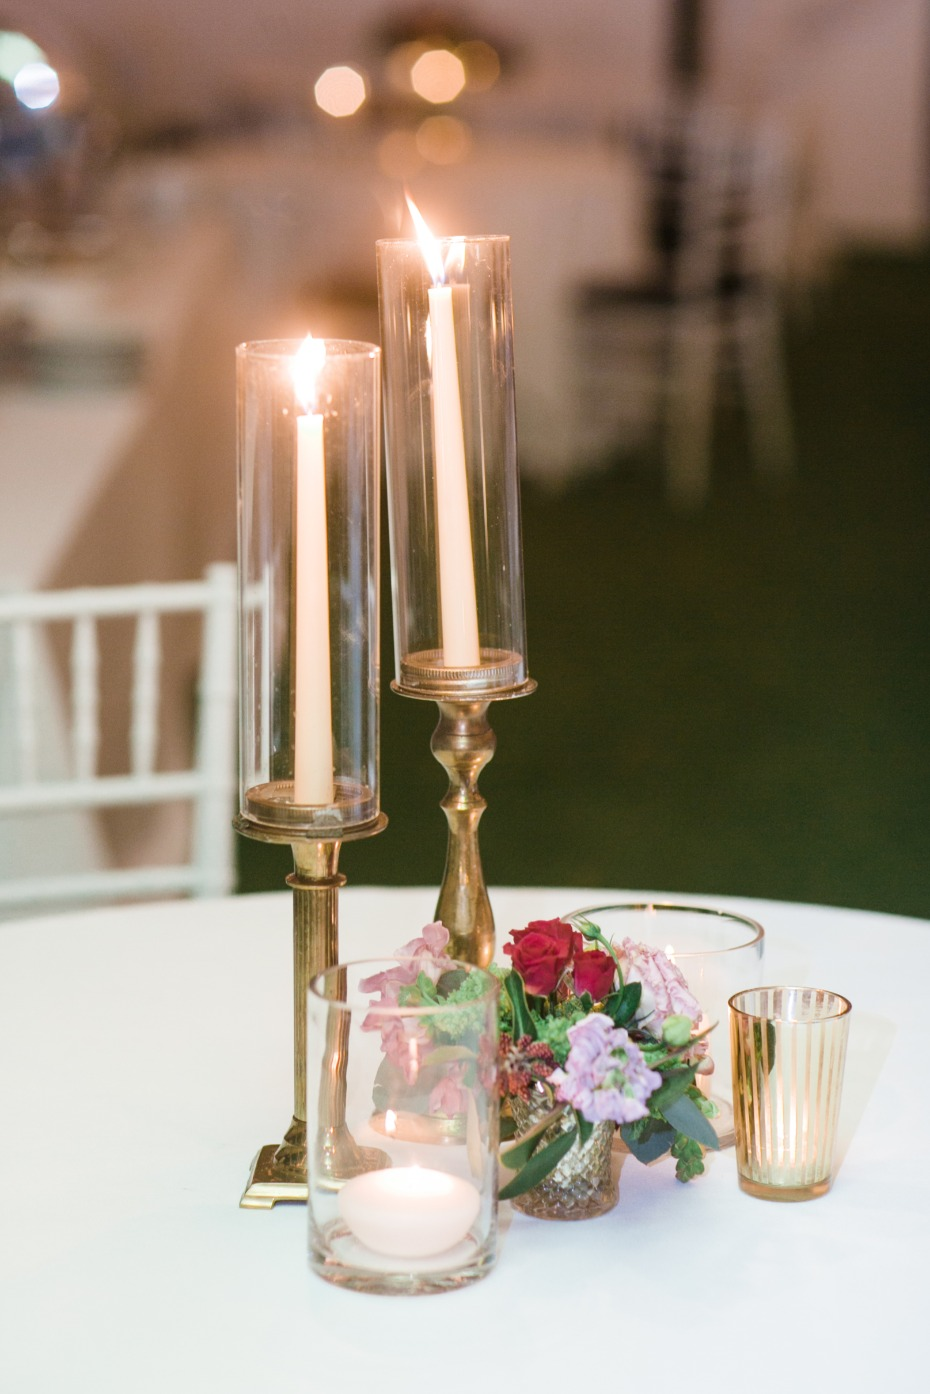 Simple yet elegant centerpiece with candles and florals